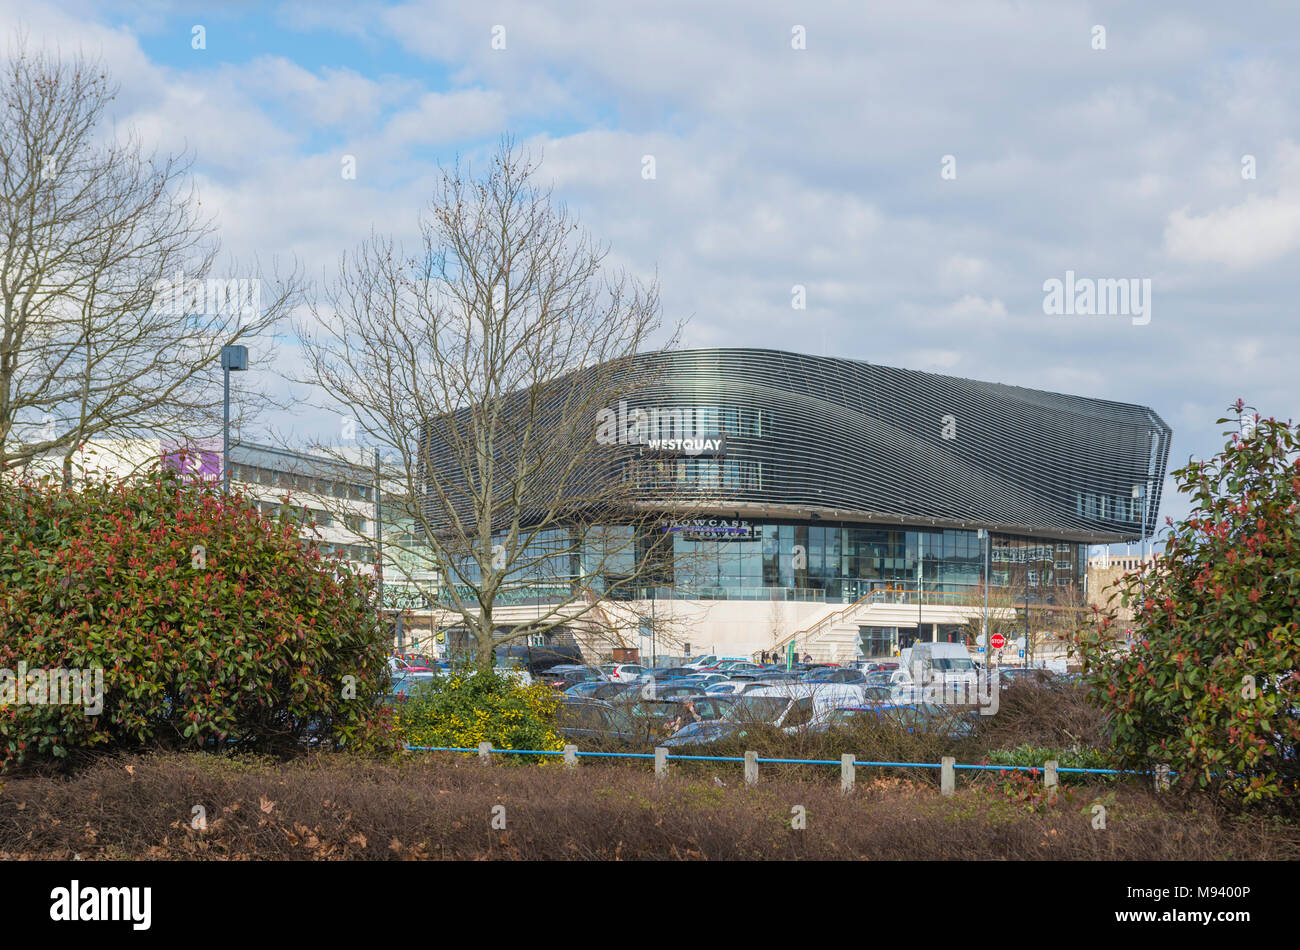 Westquay shopping centre in Southampton, Hampshire, England, UK. - Stock Image